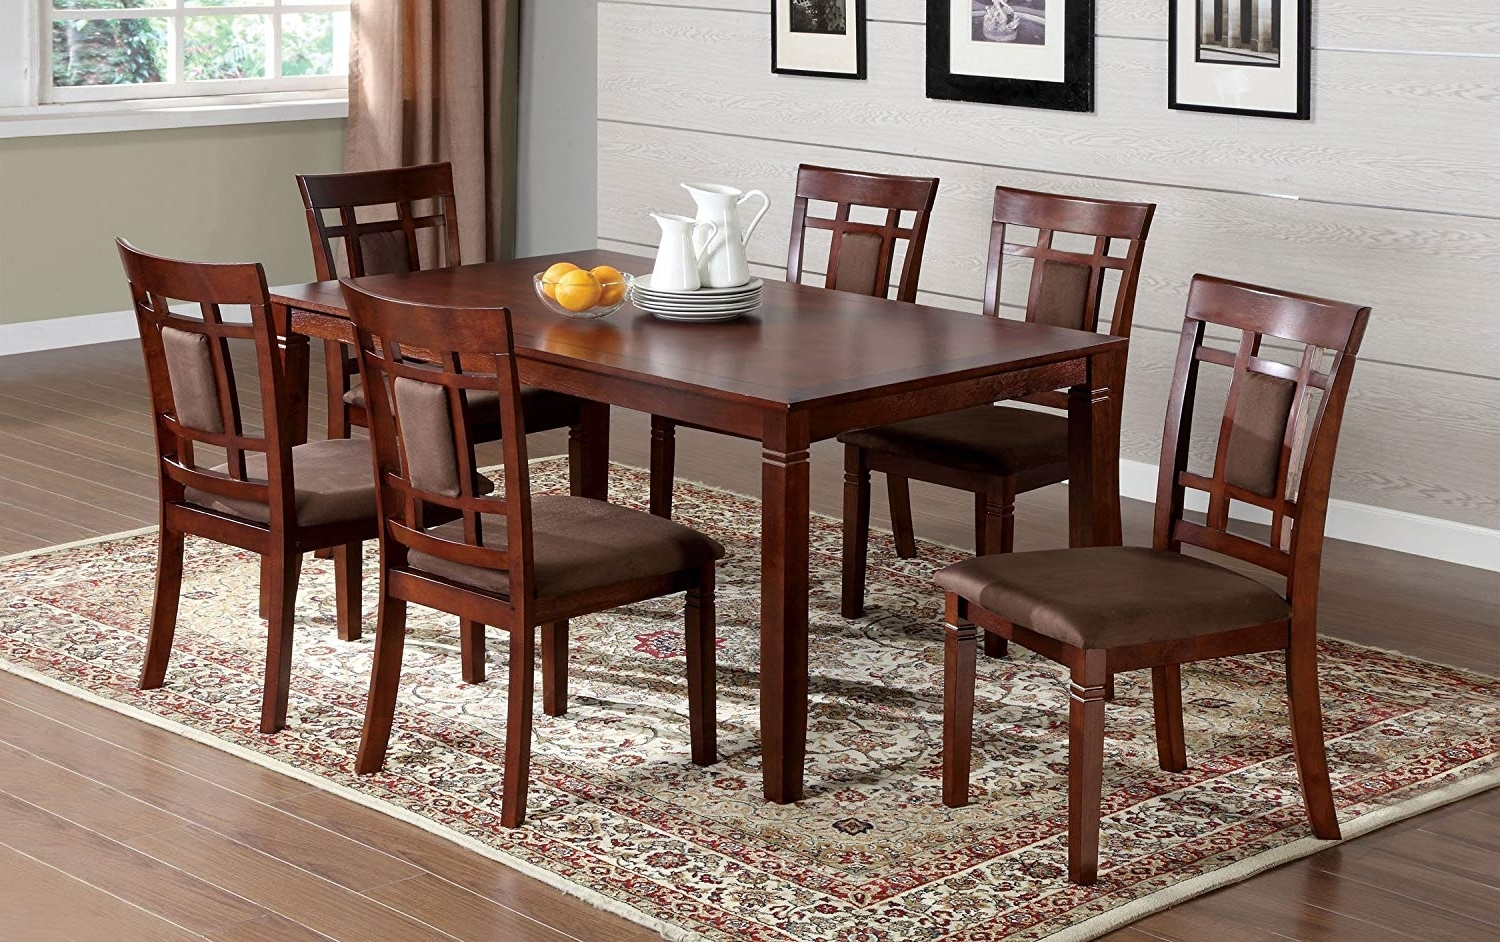 Preferred Amazon – Furniture Of America Cartiere 7 Piece Dining Table Set With Dark Dining Room Tables (View 17 of 25)